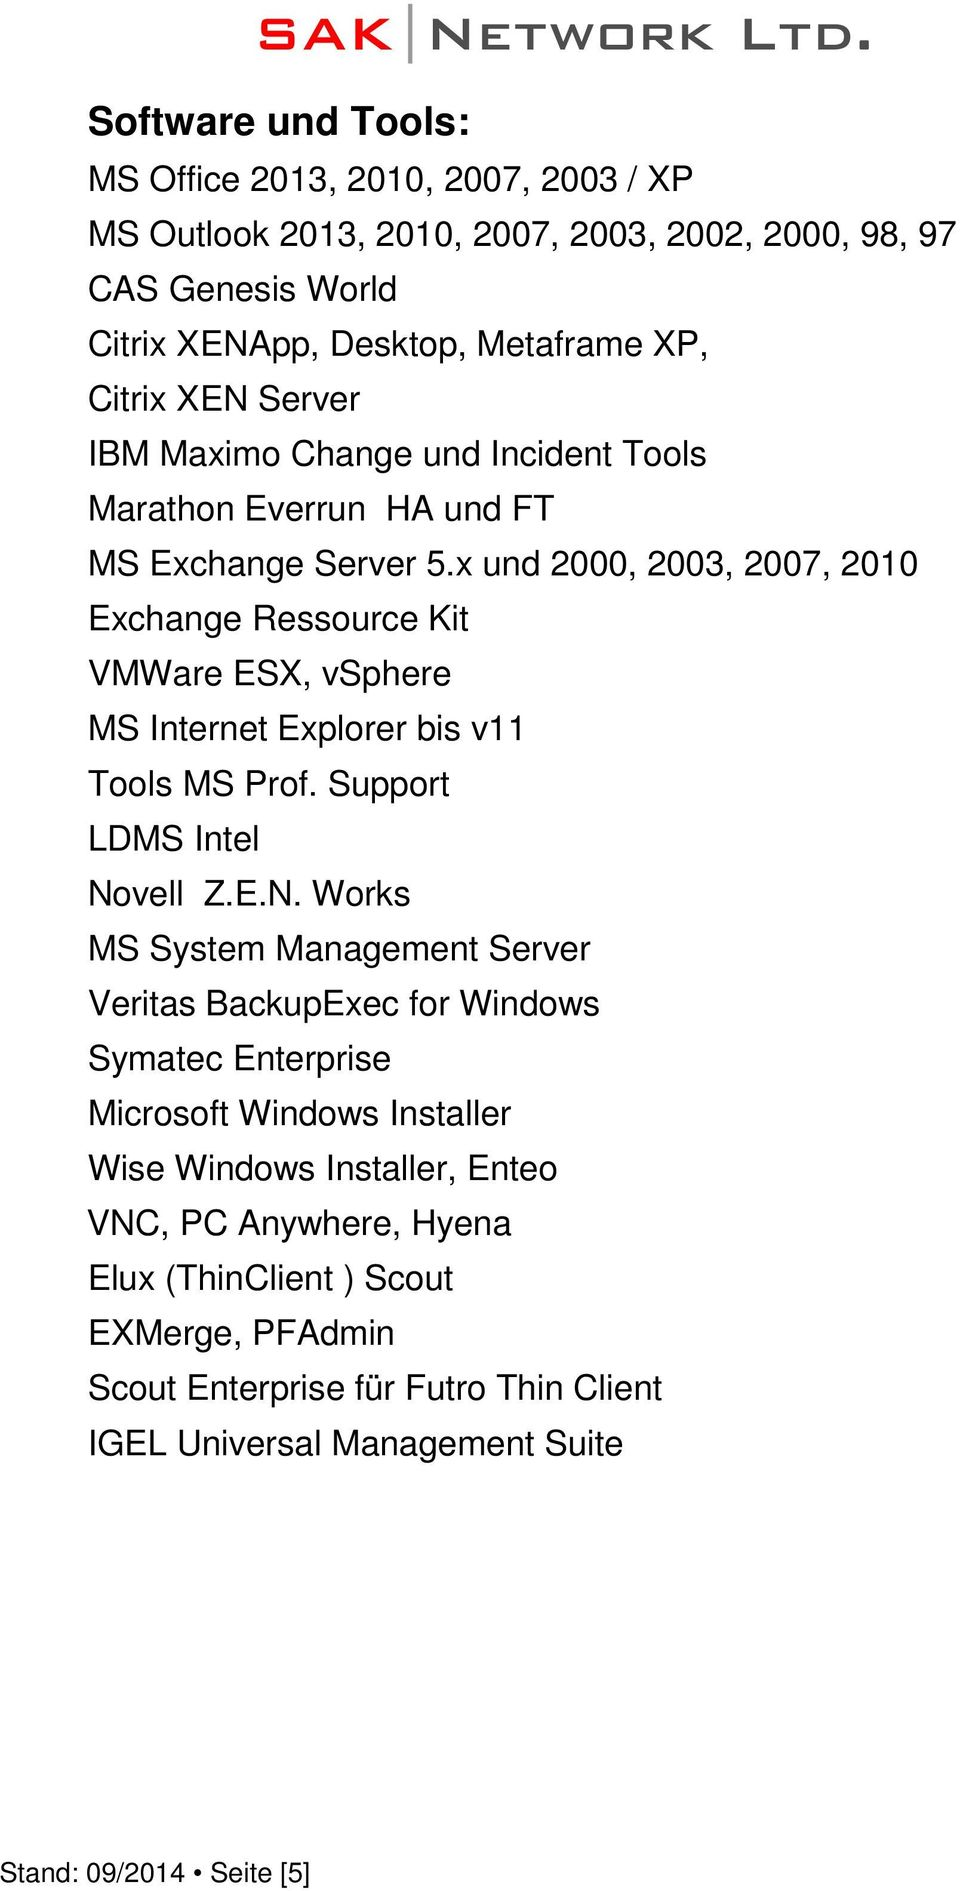 x und 2000, 2003, 2007, 2010 Exchange Ressource Kit VMWare ESX, vsphere MS Internet Explorer bis v11 Tools MS Prof. Support LDMS Intel No